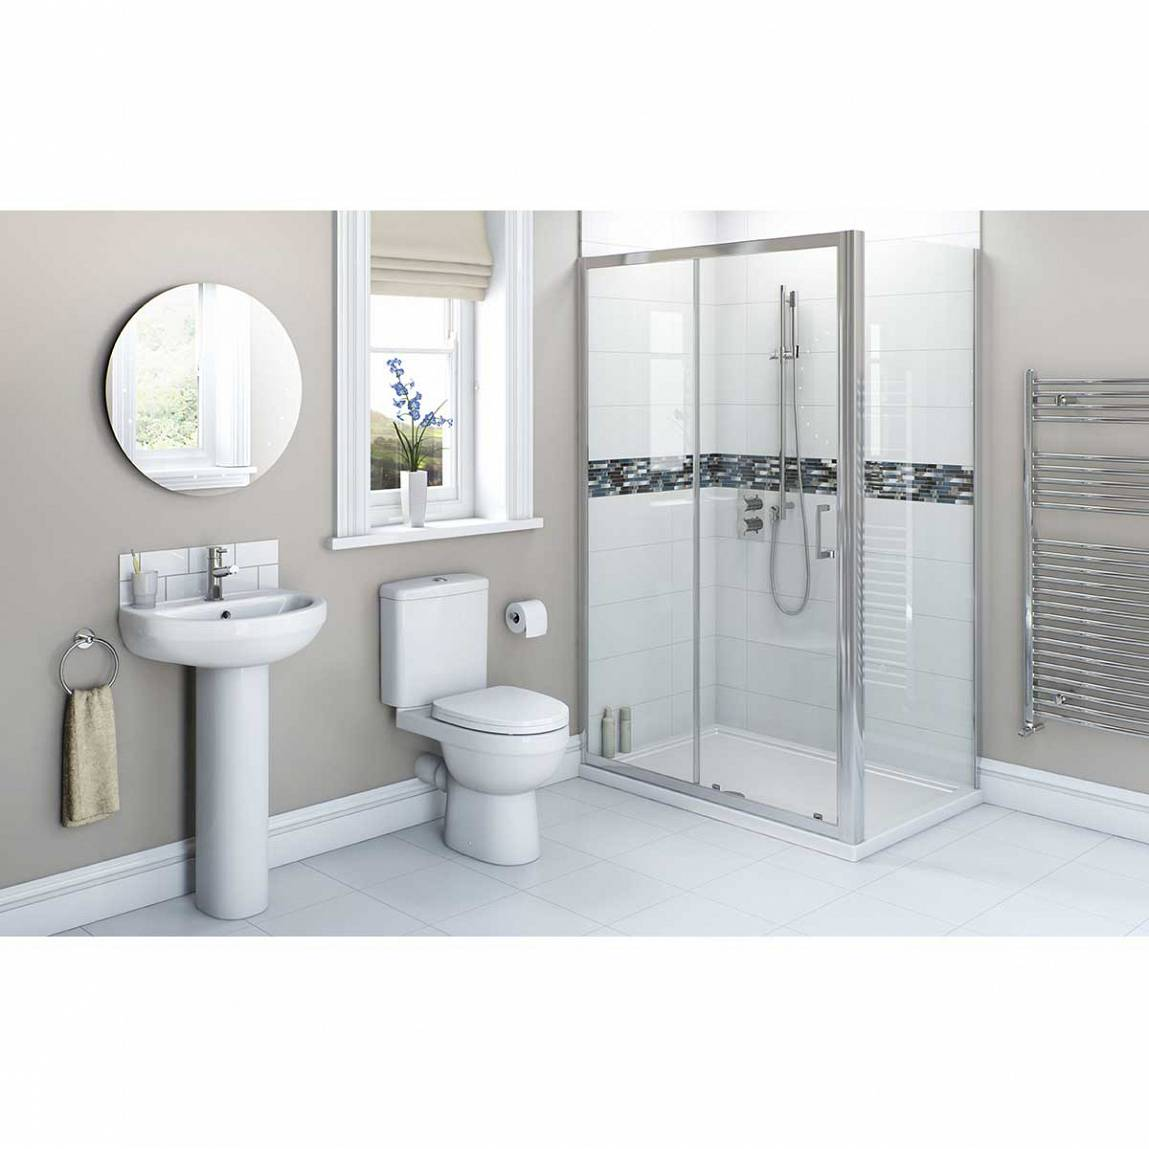 Image of Energy Bathroom set with 1600x800 Sliding Enclosure